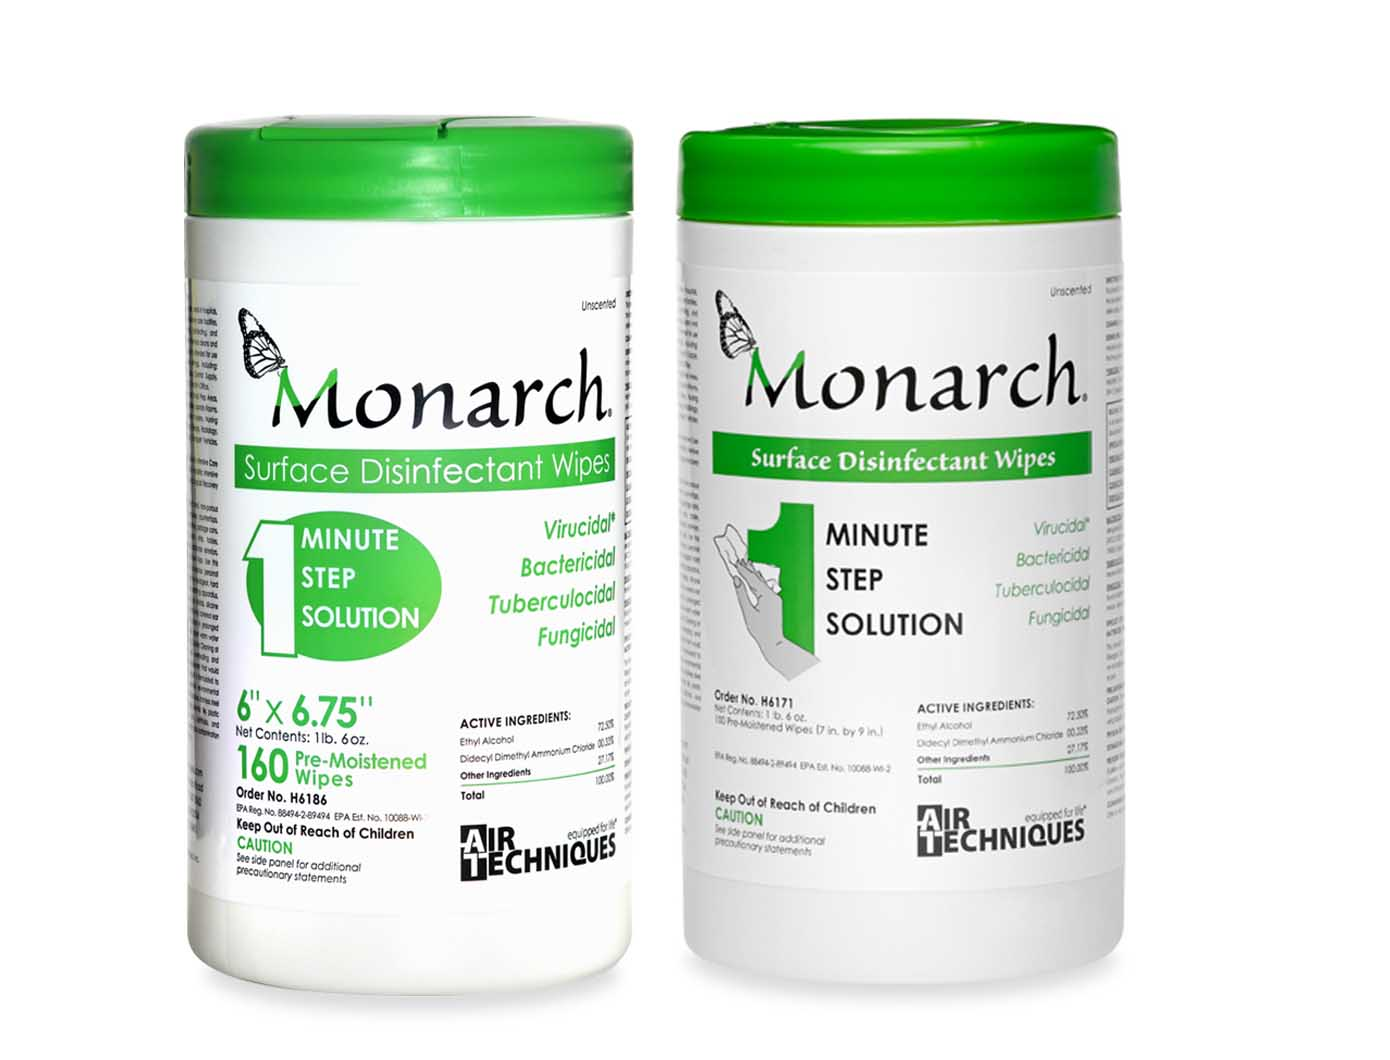 Monarch Wipes Sample - Air Techniques